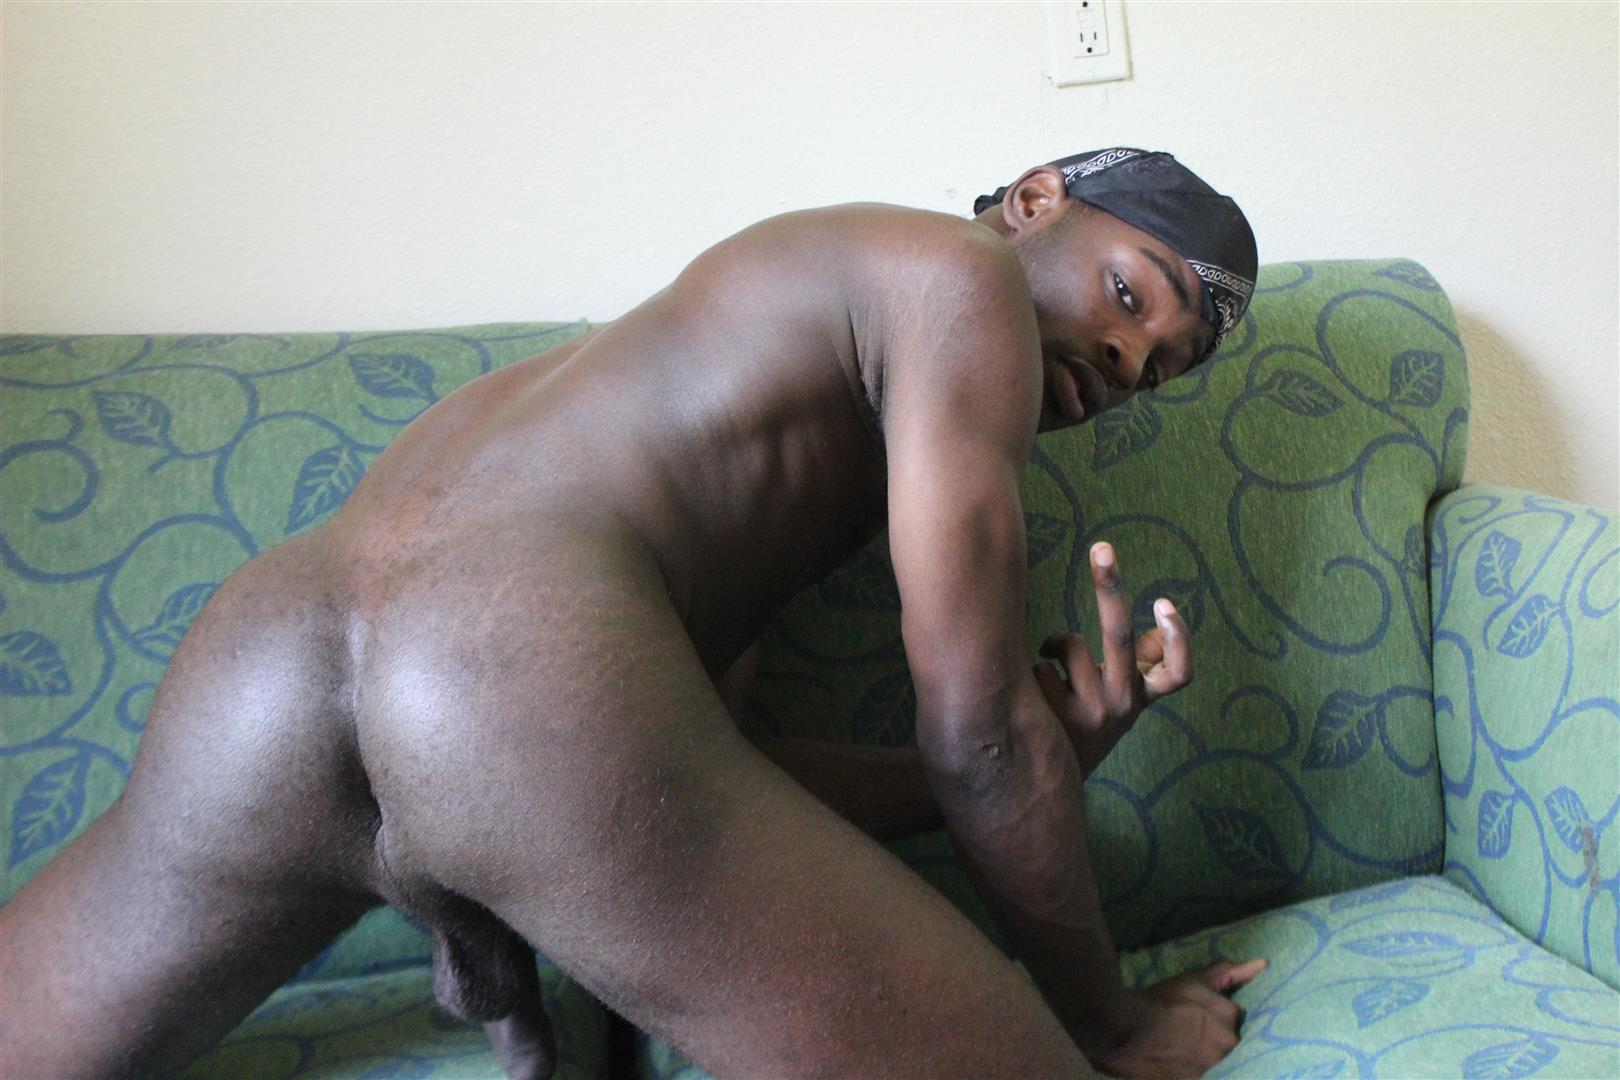 Traphouse-Boys-Brown-and-Carlos-Big-Black-Cock-Bareback-Amateur-Gay-Porn-04 DL Thugs Barebacking With Their Big Uncut Black Dicks